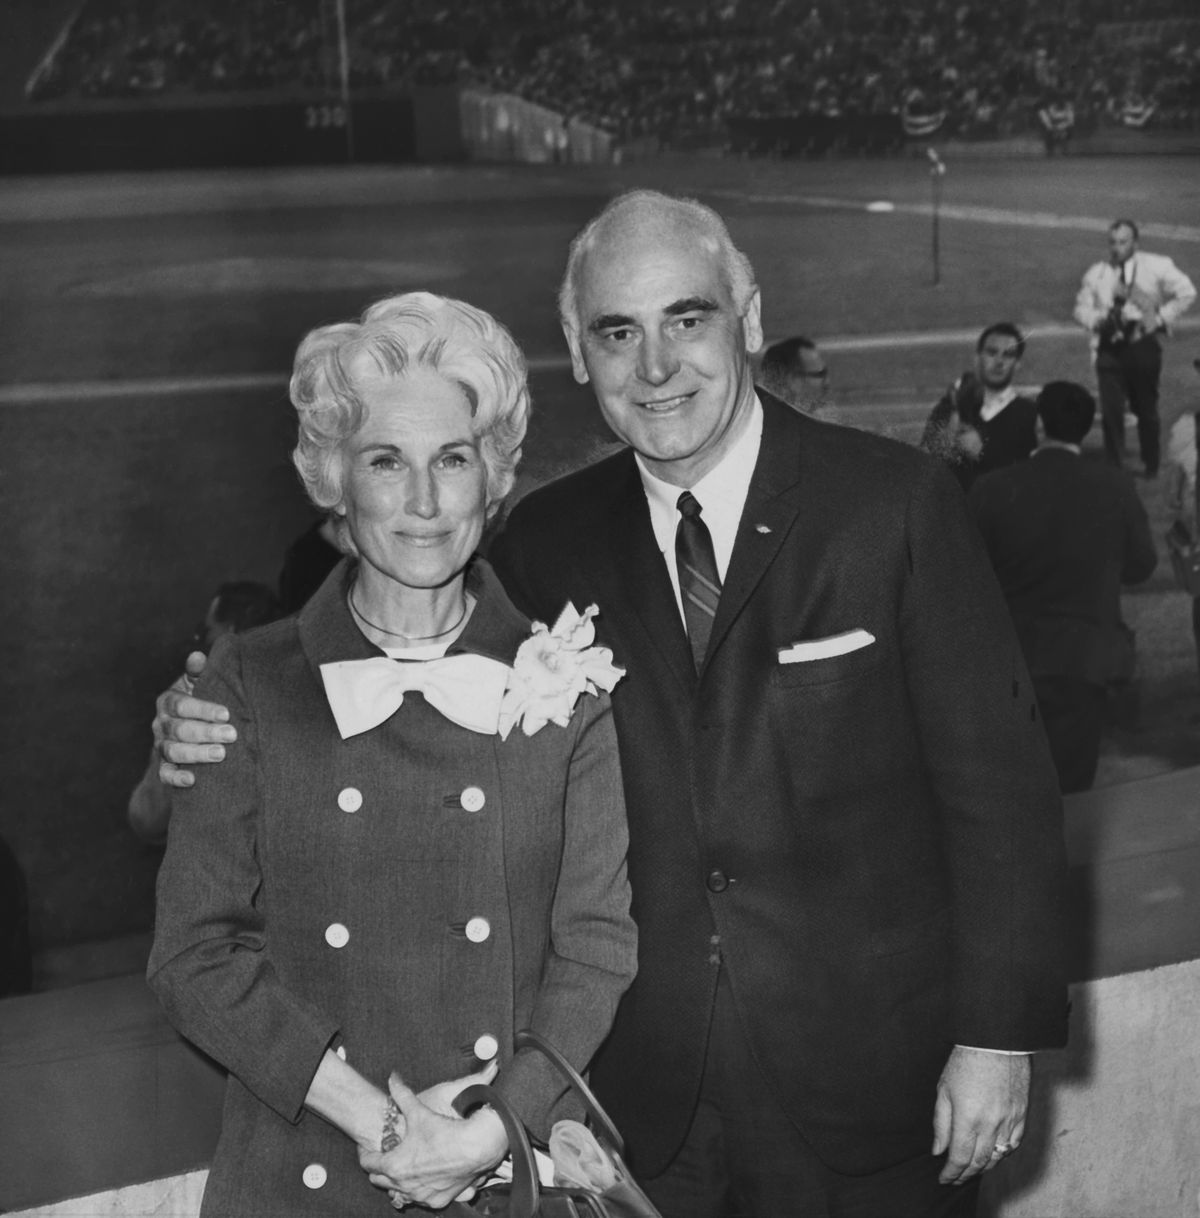 Oakland, CA April 17, 1968 - Mr. and Mrs. Charlie O. Finley attend the A's first game at the Oakland Coliseum. (Jim Edelen / Oakland Tribune Staff Archives)